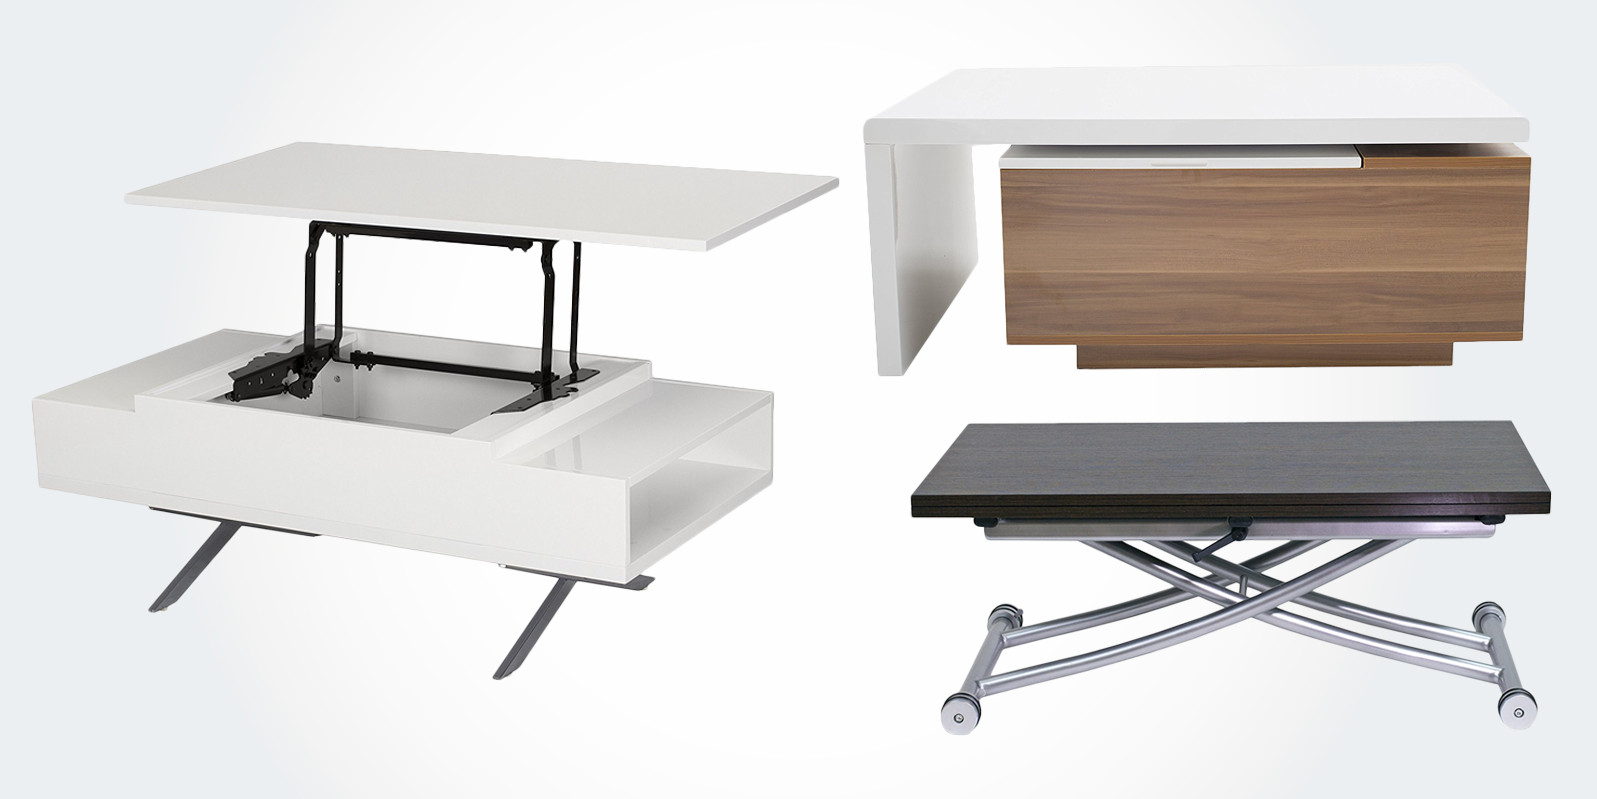 Best ideas about Coffee Table To Dining Table . Save or Pin 12 Best Convertible Coffee Table to Dining Table Now.